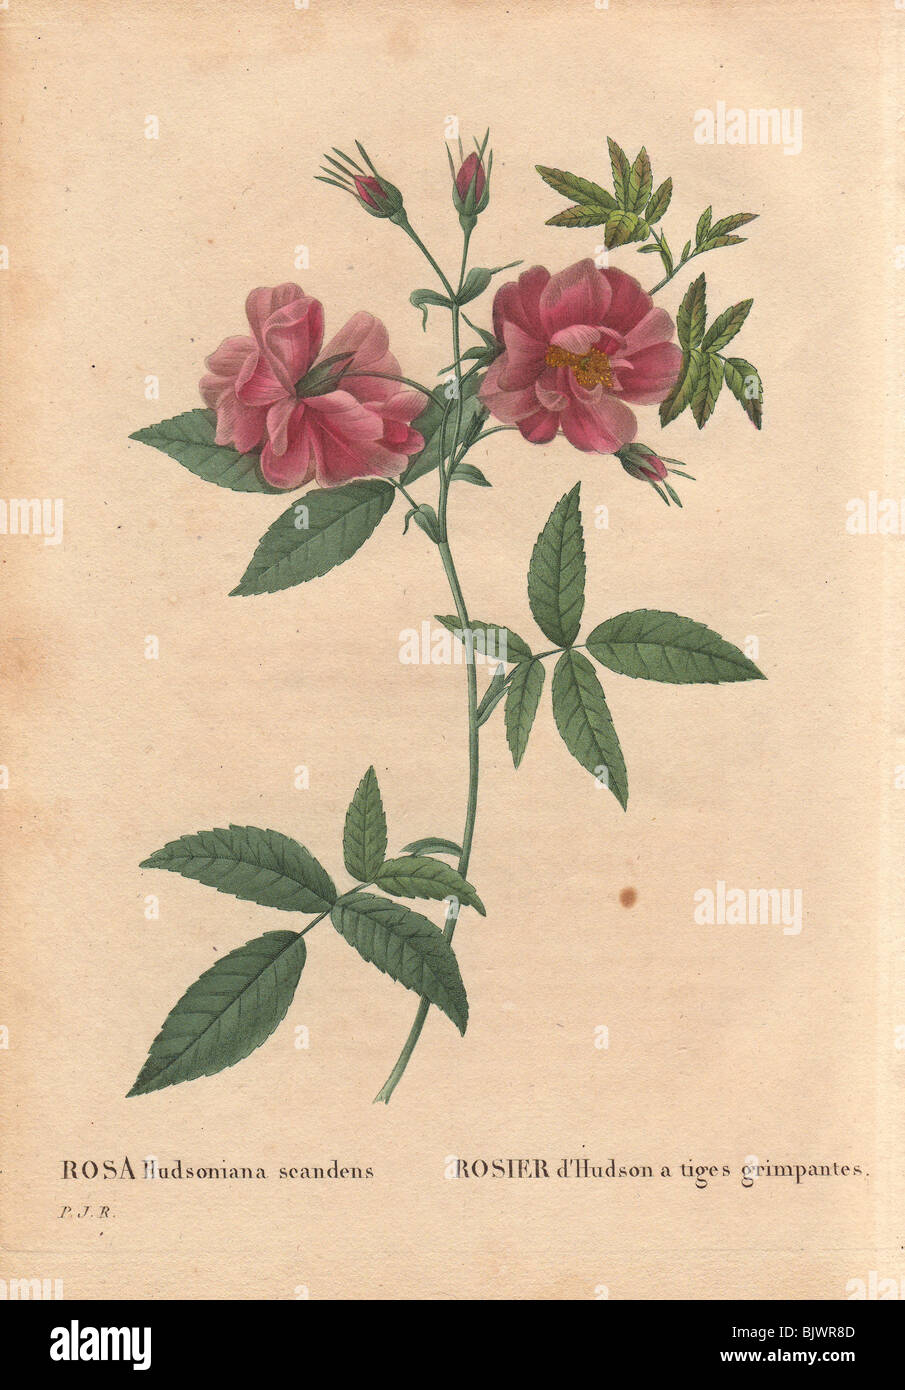 Climbing hudsons rose with dusty pink flowers rosa hudsoniana climbing hudsons rose with dusty pink flowers rosa hudsoniana scandens mightylinksfo